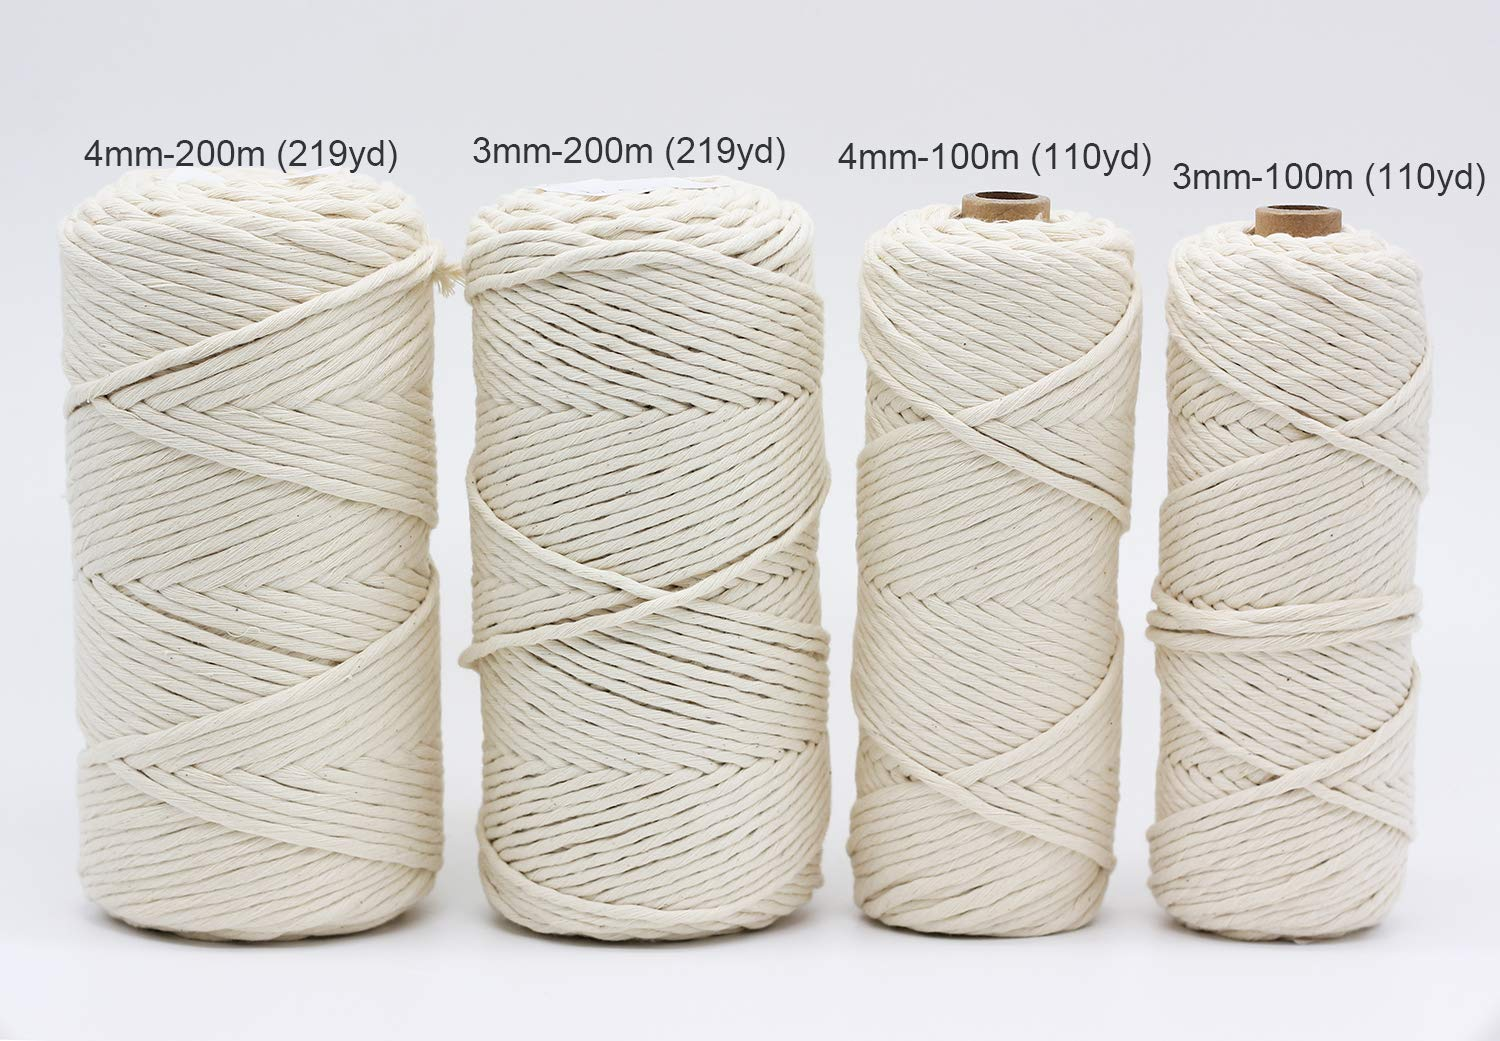 4mm 219Y Macrame Cord Rope -1/6inch Single Stand White Macrame Cotton String for Handemade Wall Hanging Weaving Basketry Crochet and Tapestry (4mm-200m (219yd)) by FLORAVOGUE (Image #6)